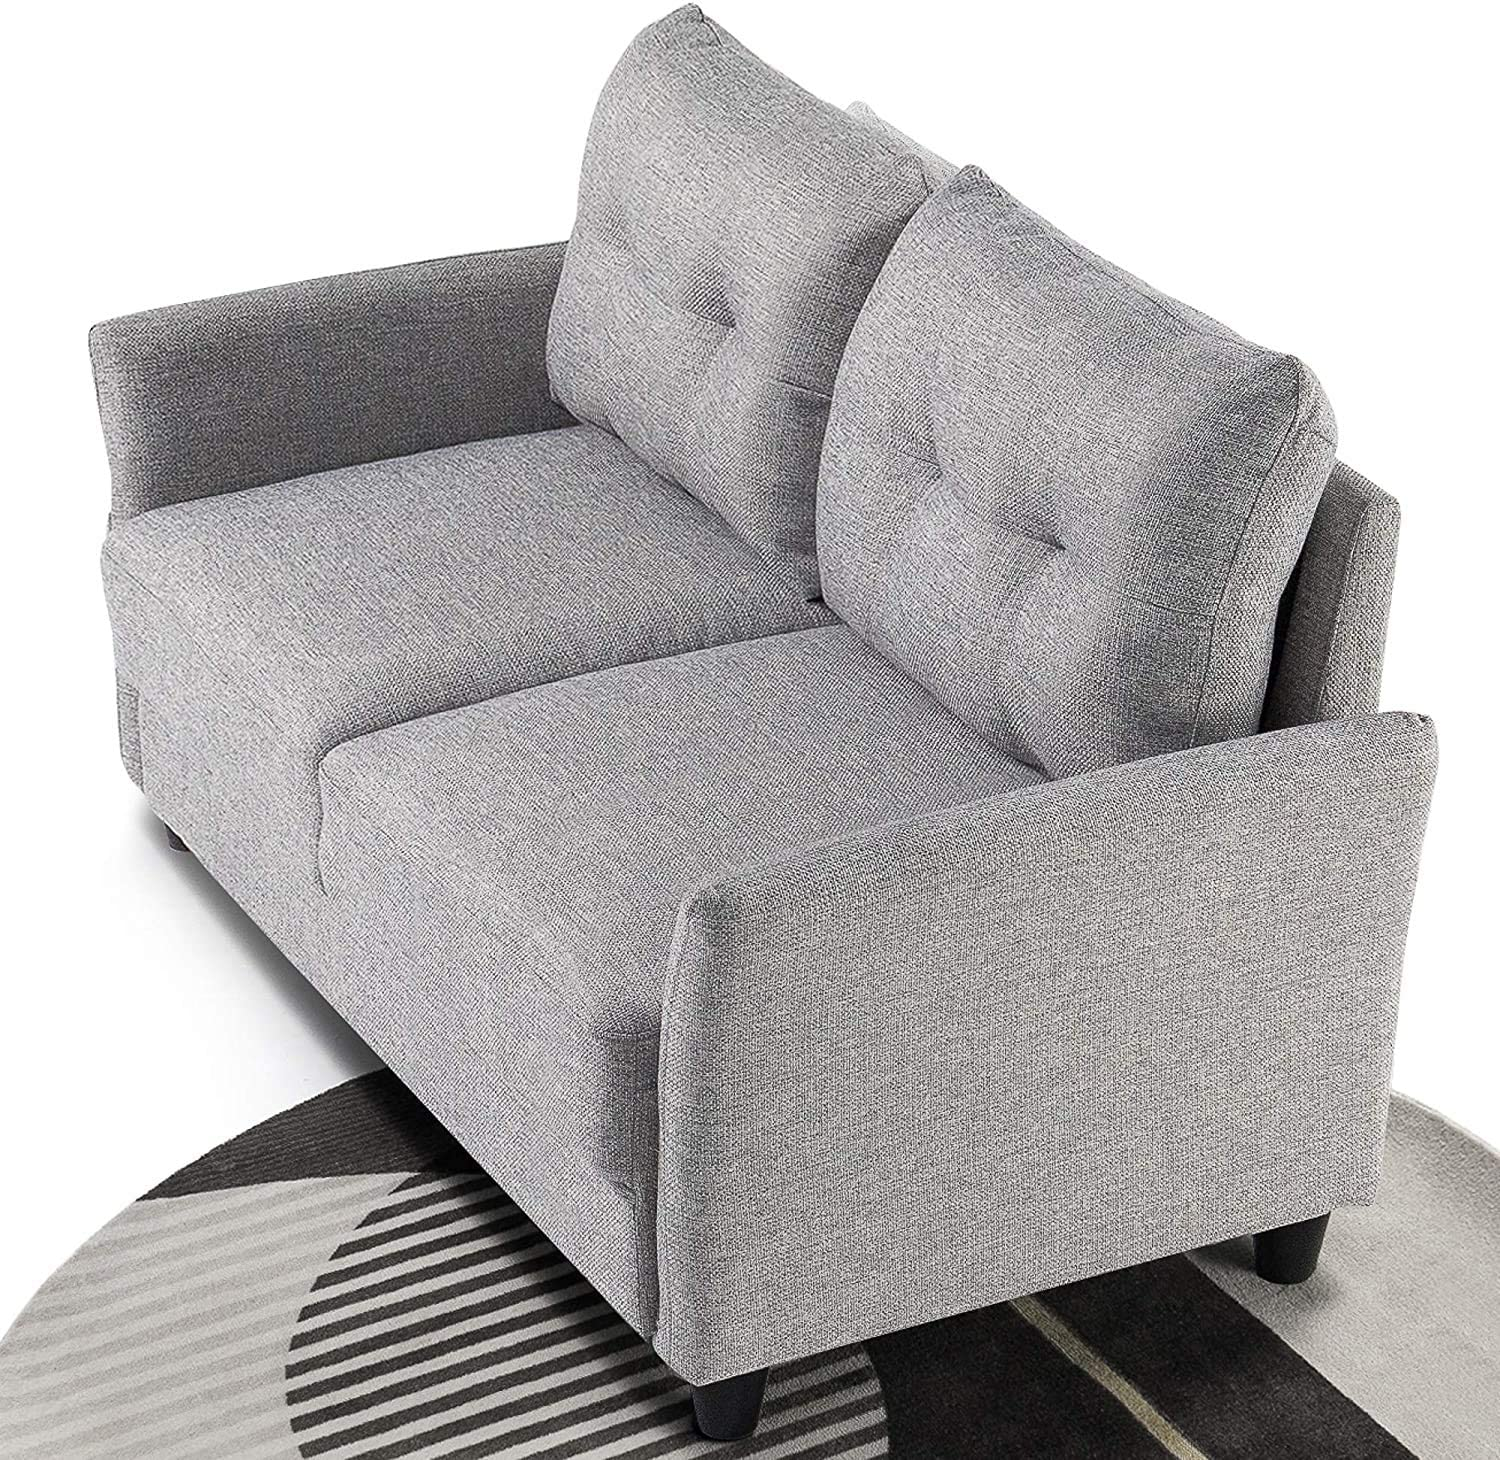 ZINUS Ricardo Loveseat Sofa / Tufted Cushions / Easy, Tool-Free Assembly, Soft Grey